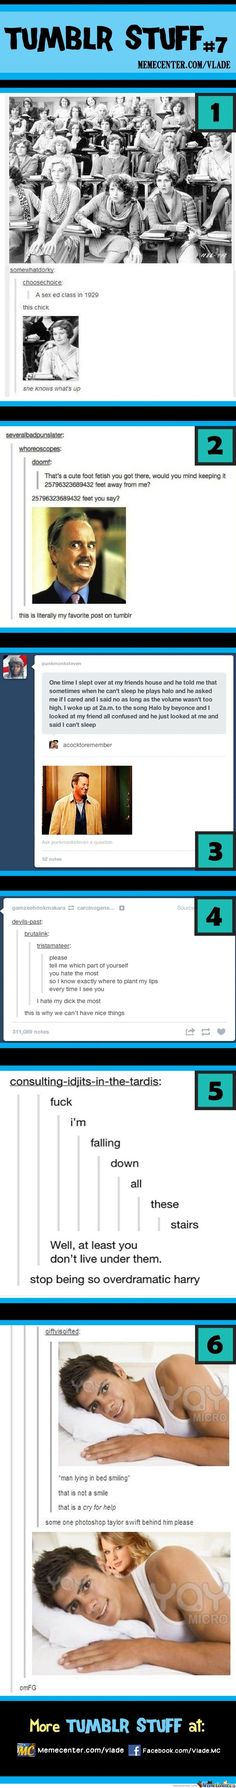 Sorry for the inappropriate ones but the others are too funny I'm dying.  hahaha